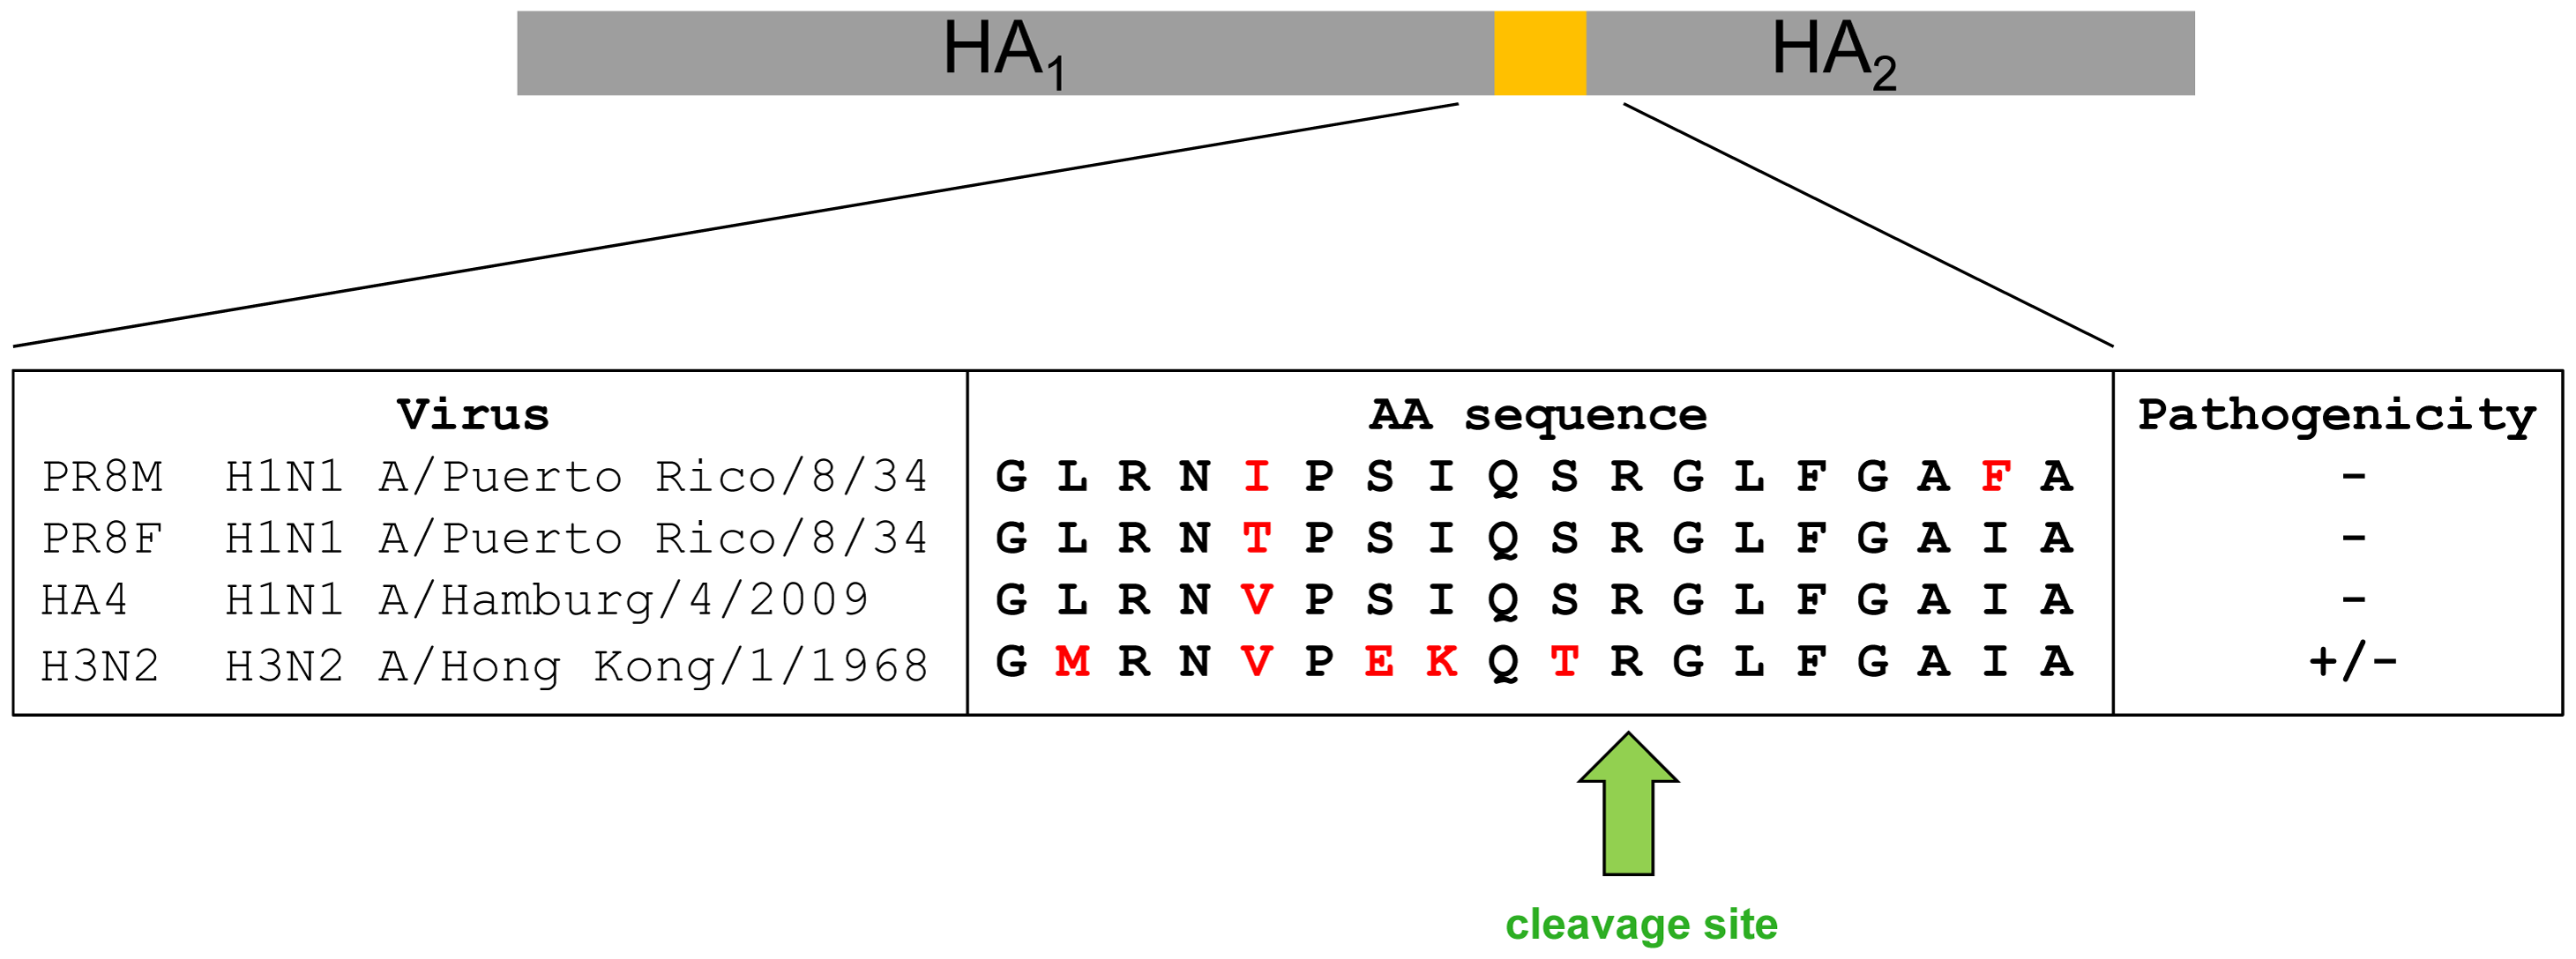 Alignment of amino acid sequences of the protease loop region from H1N1 and H3N2 influenza A viruses.